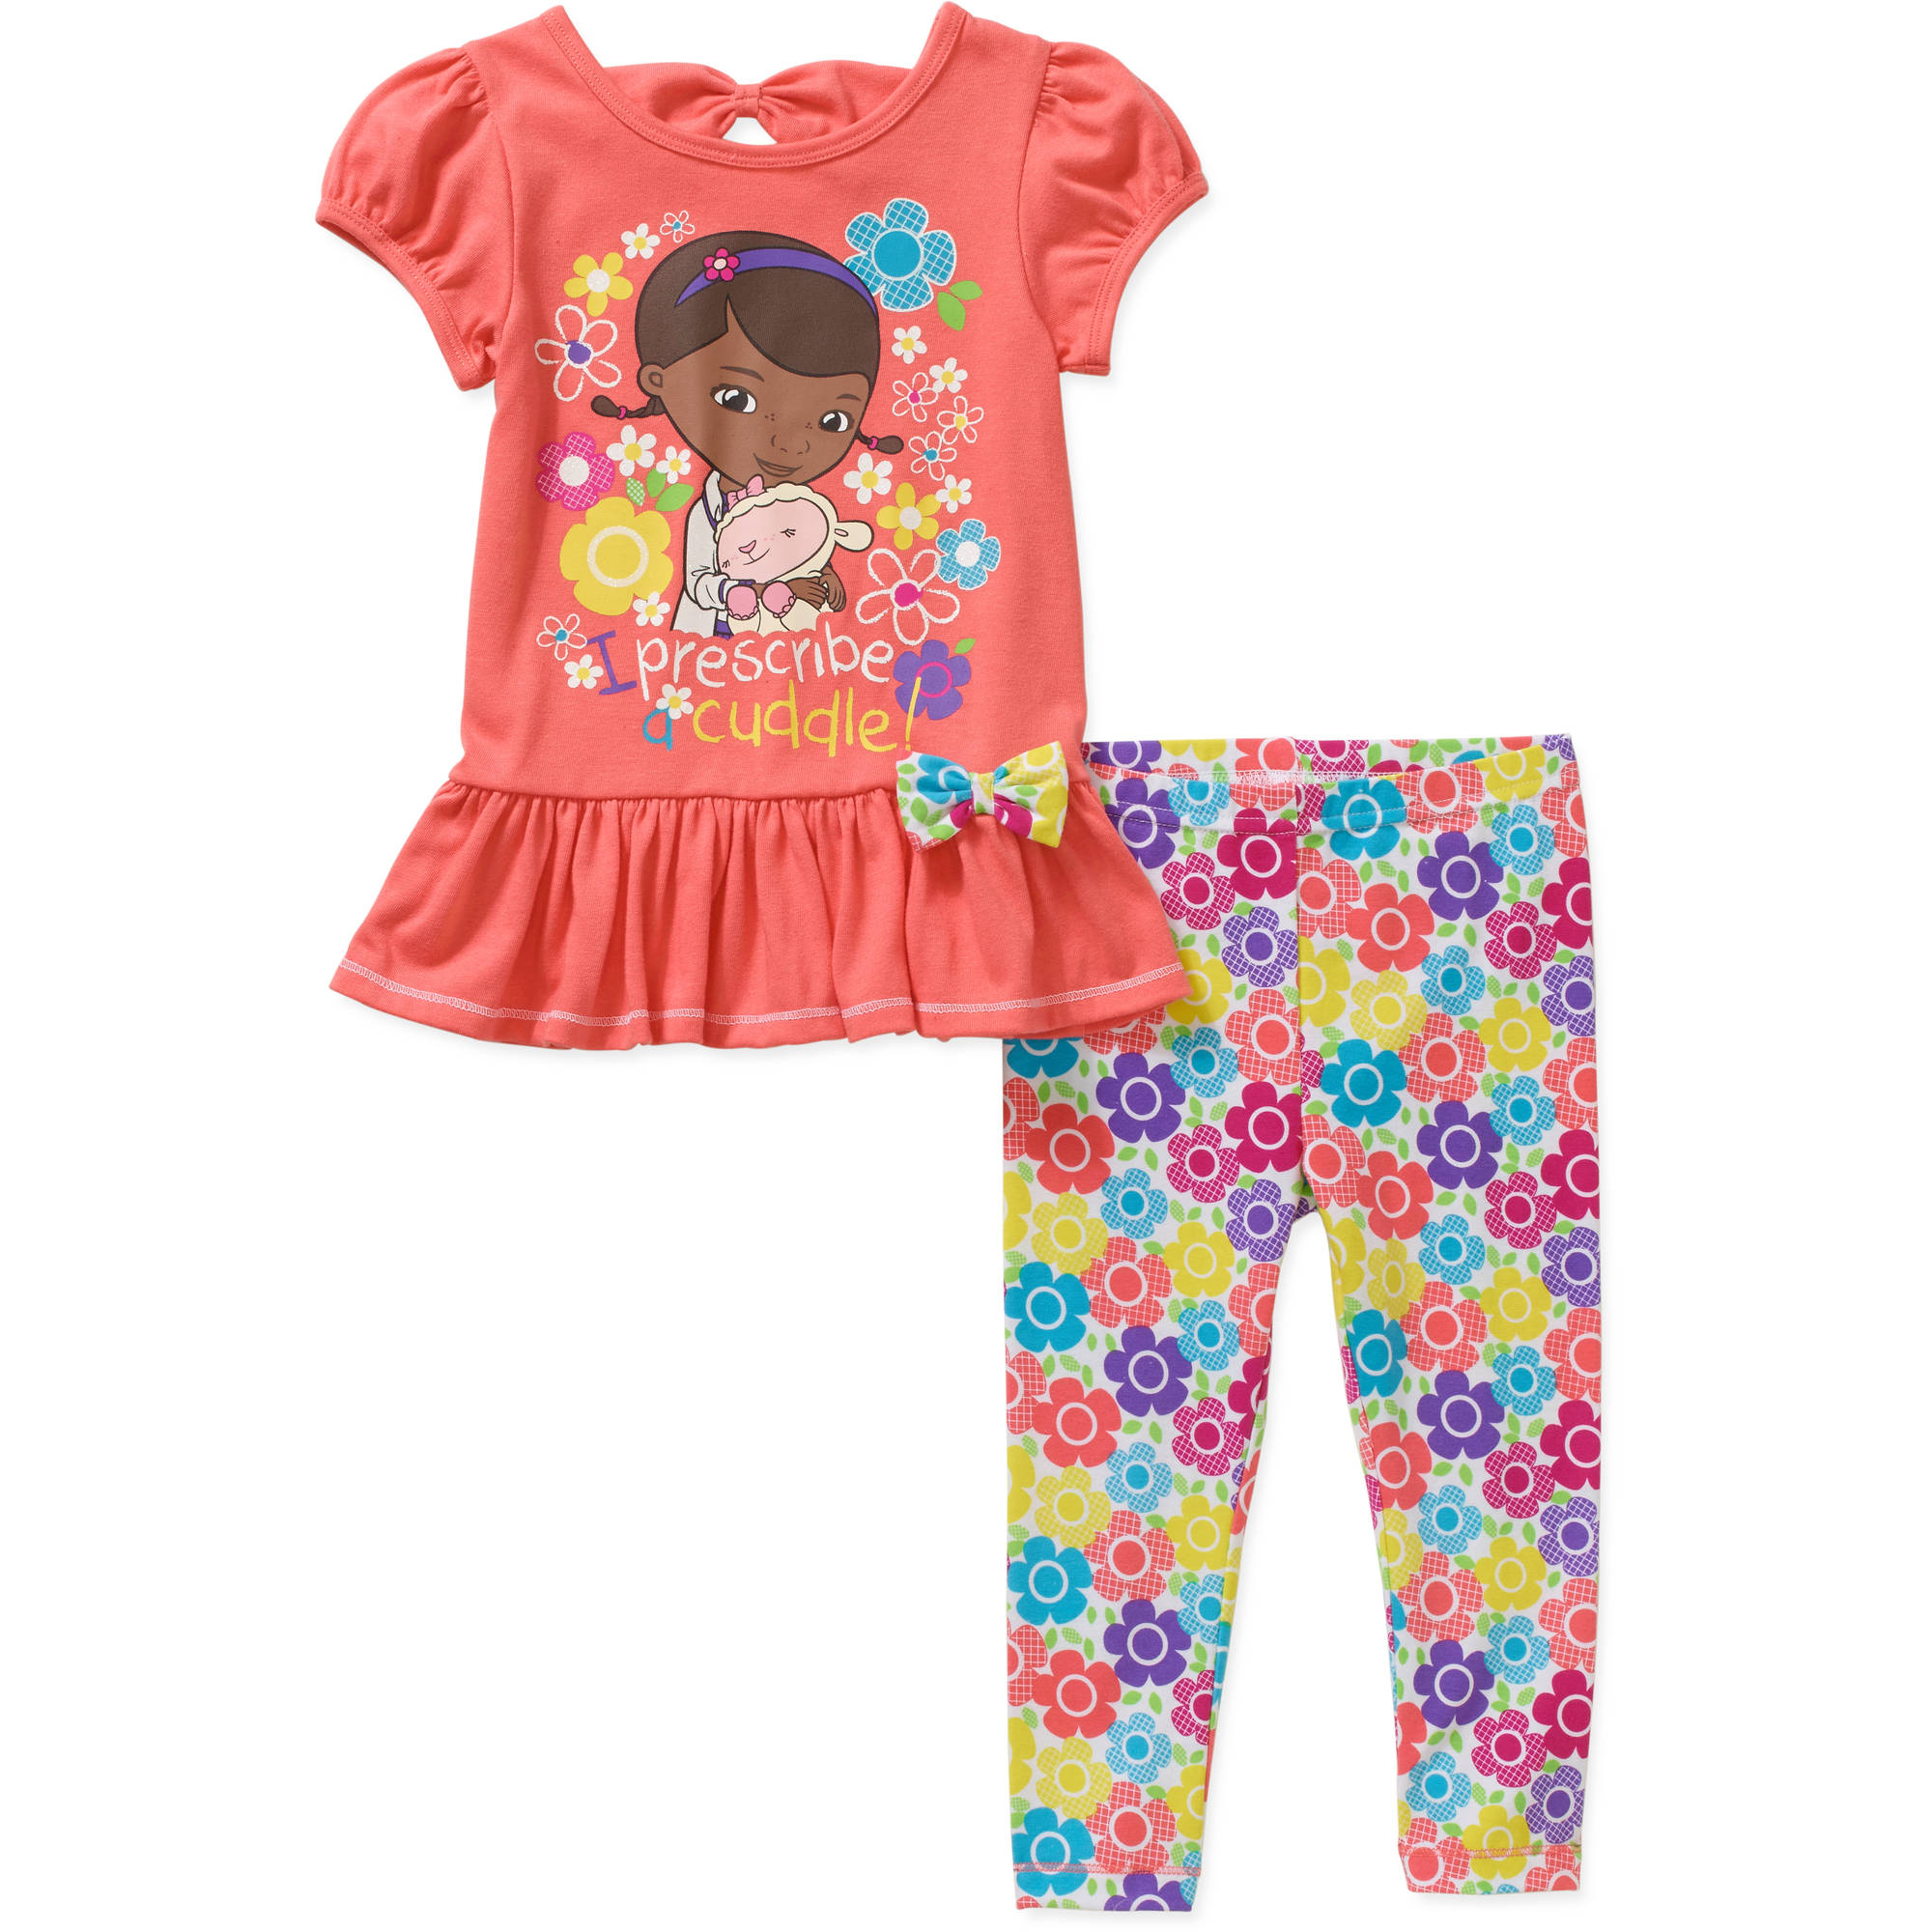 Doc McStuffins Toddler Girls' Peplum Tunic and Leggings Outfit Set